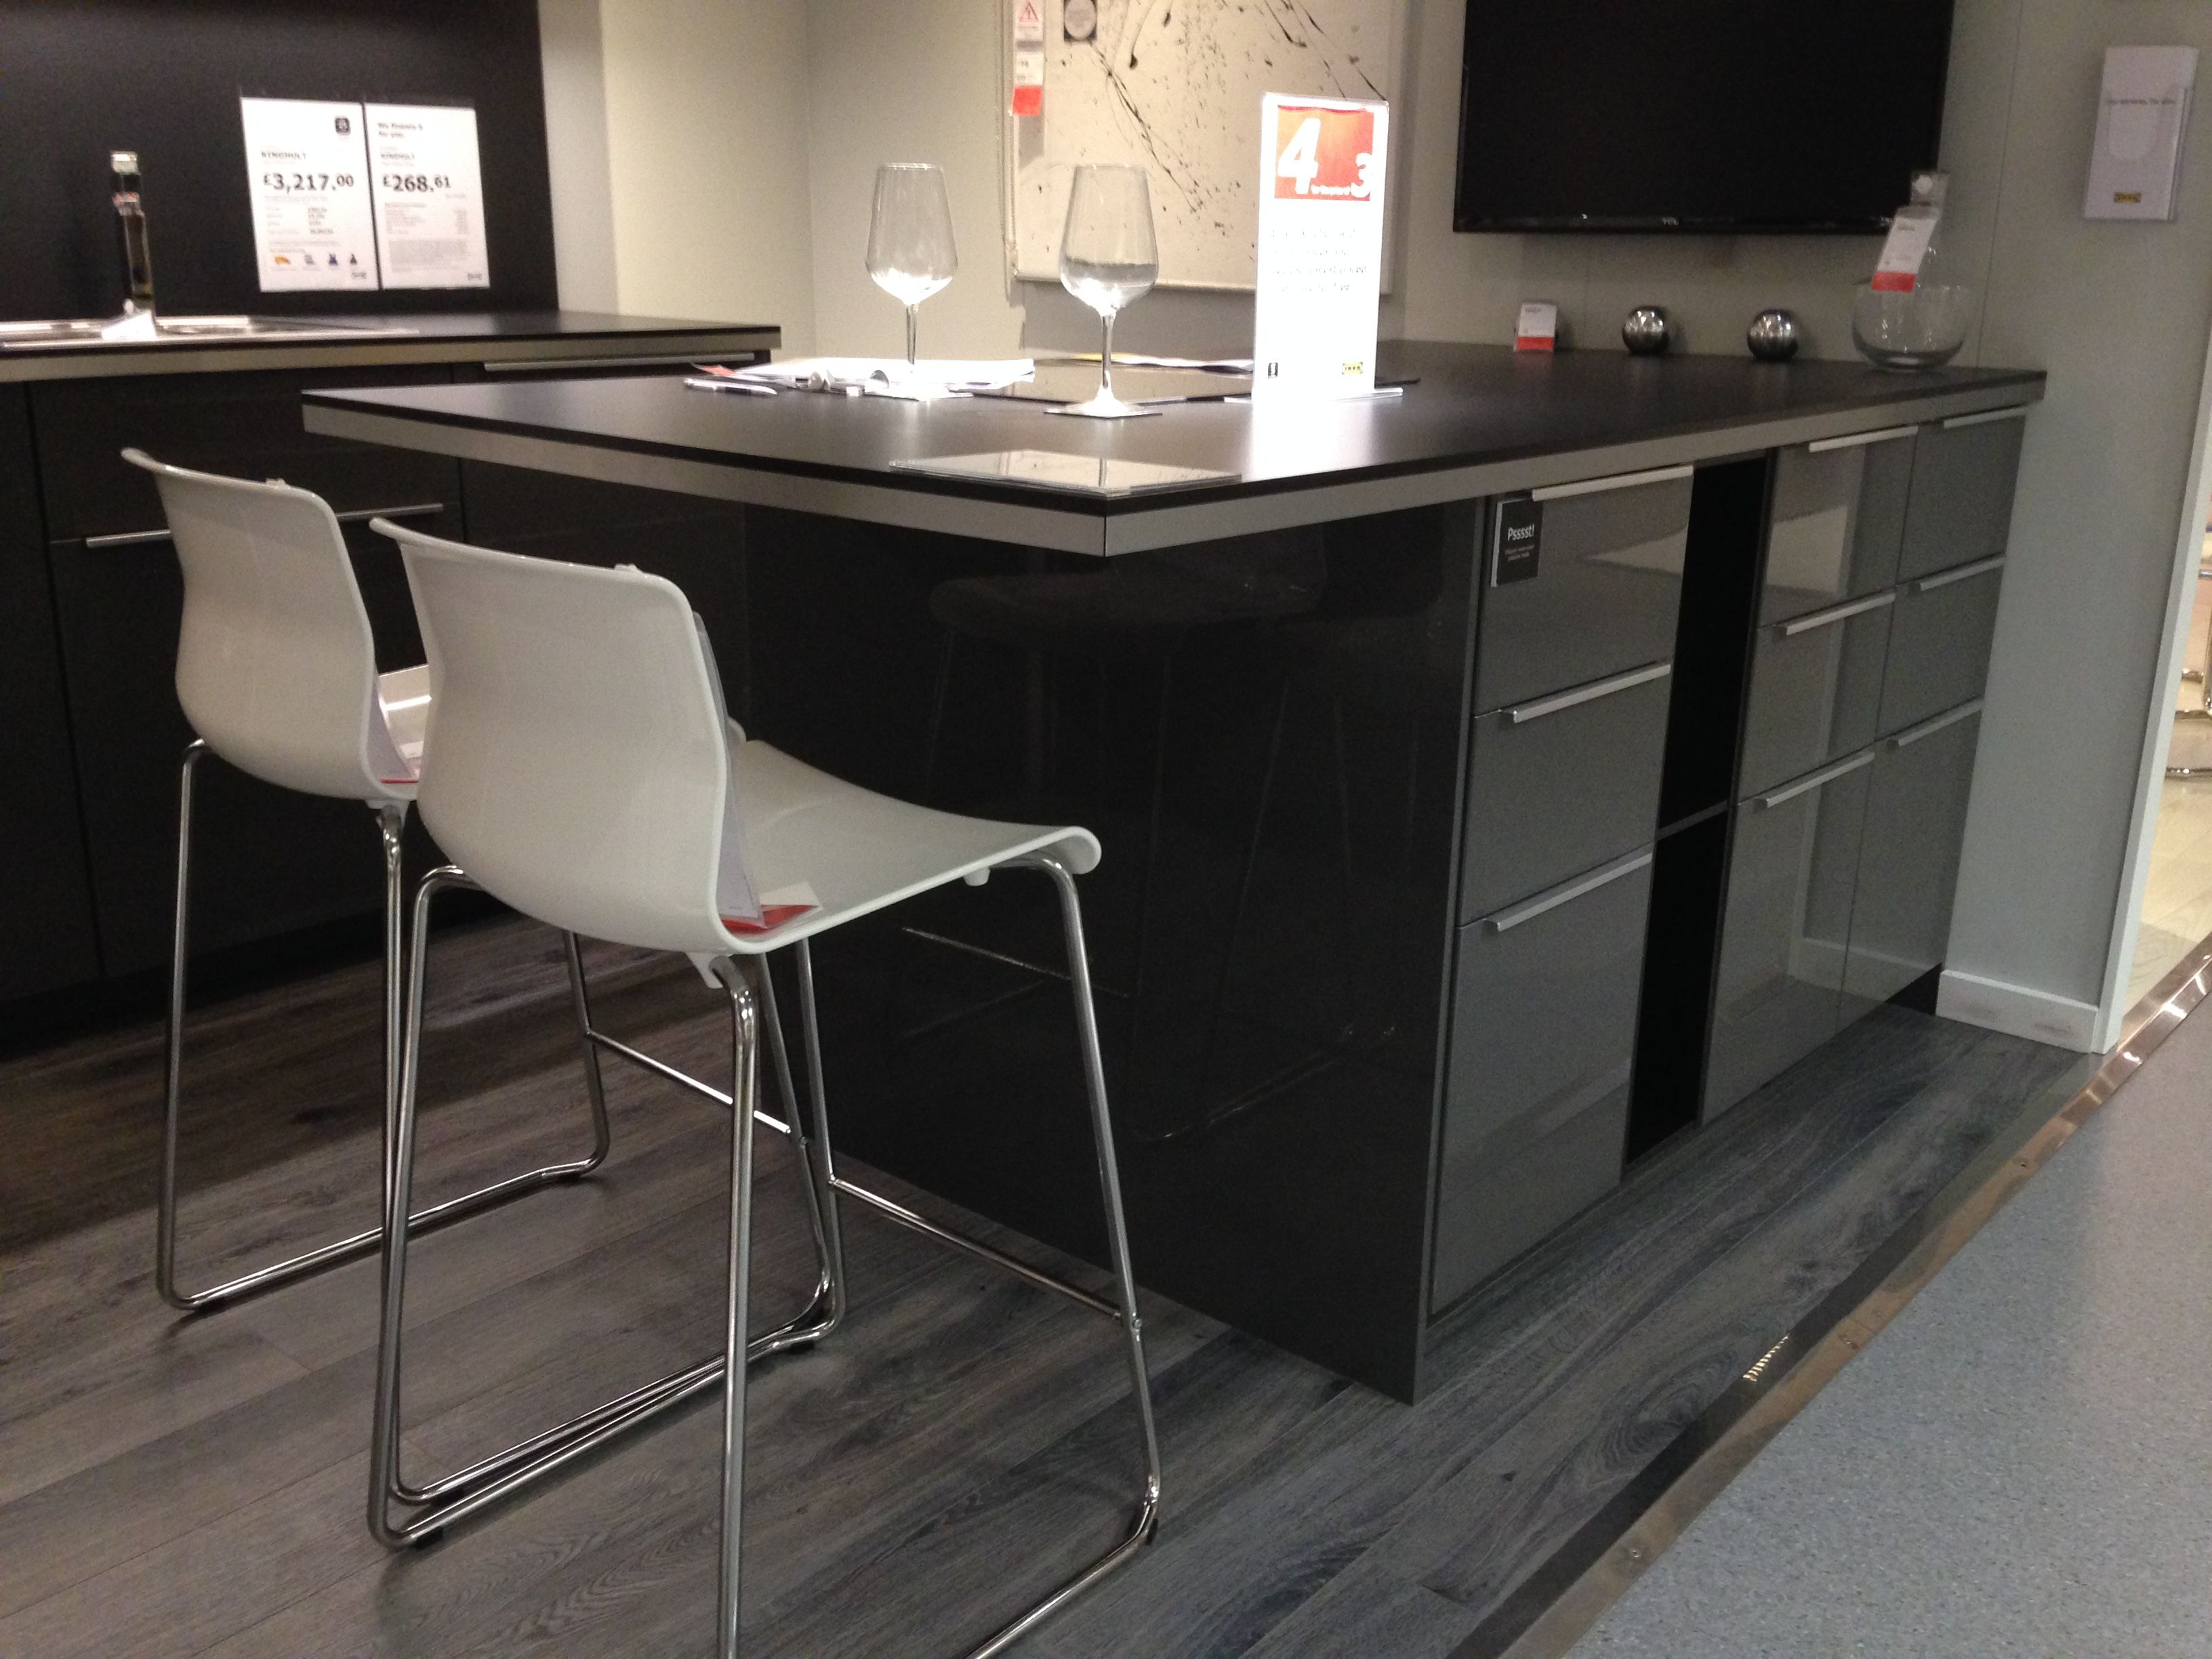 White Kitchen Breakfast Bar Ringhult Kitchen Ikea Grey Gloss With Breakfast Bar Had 39t